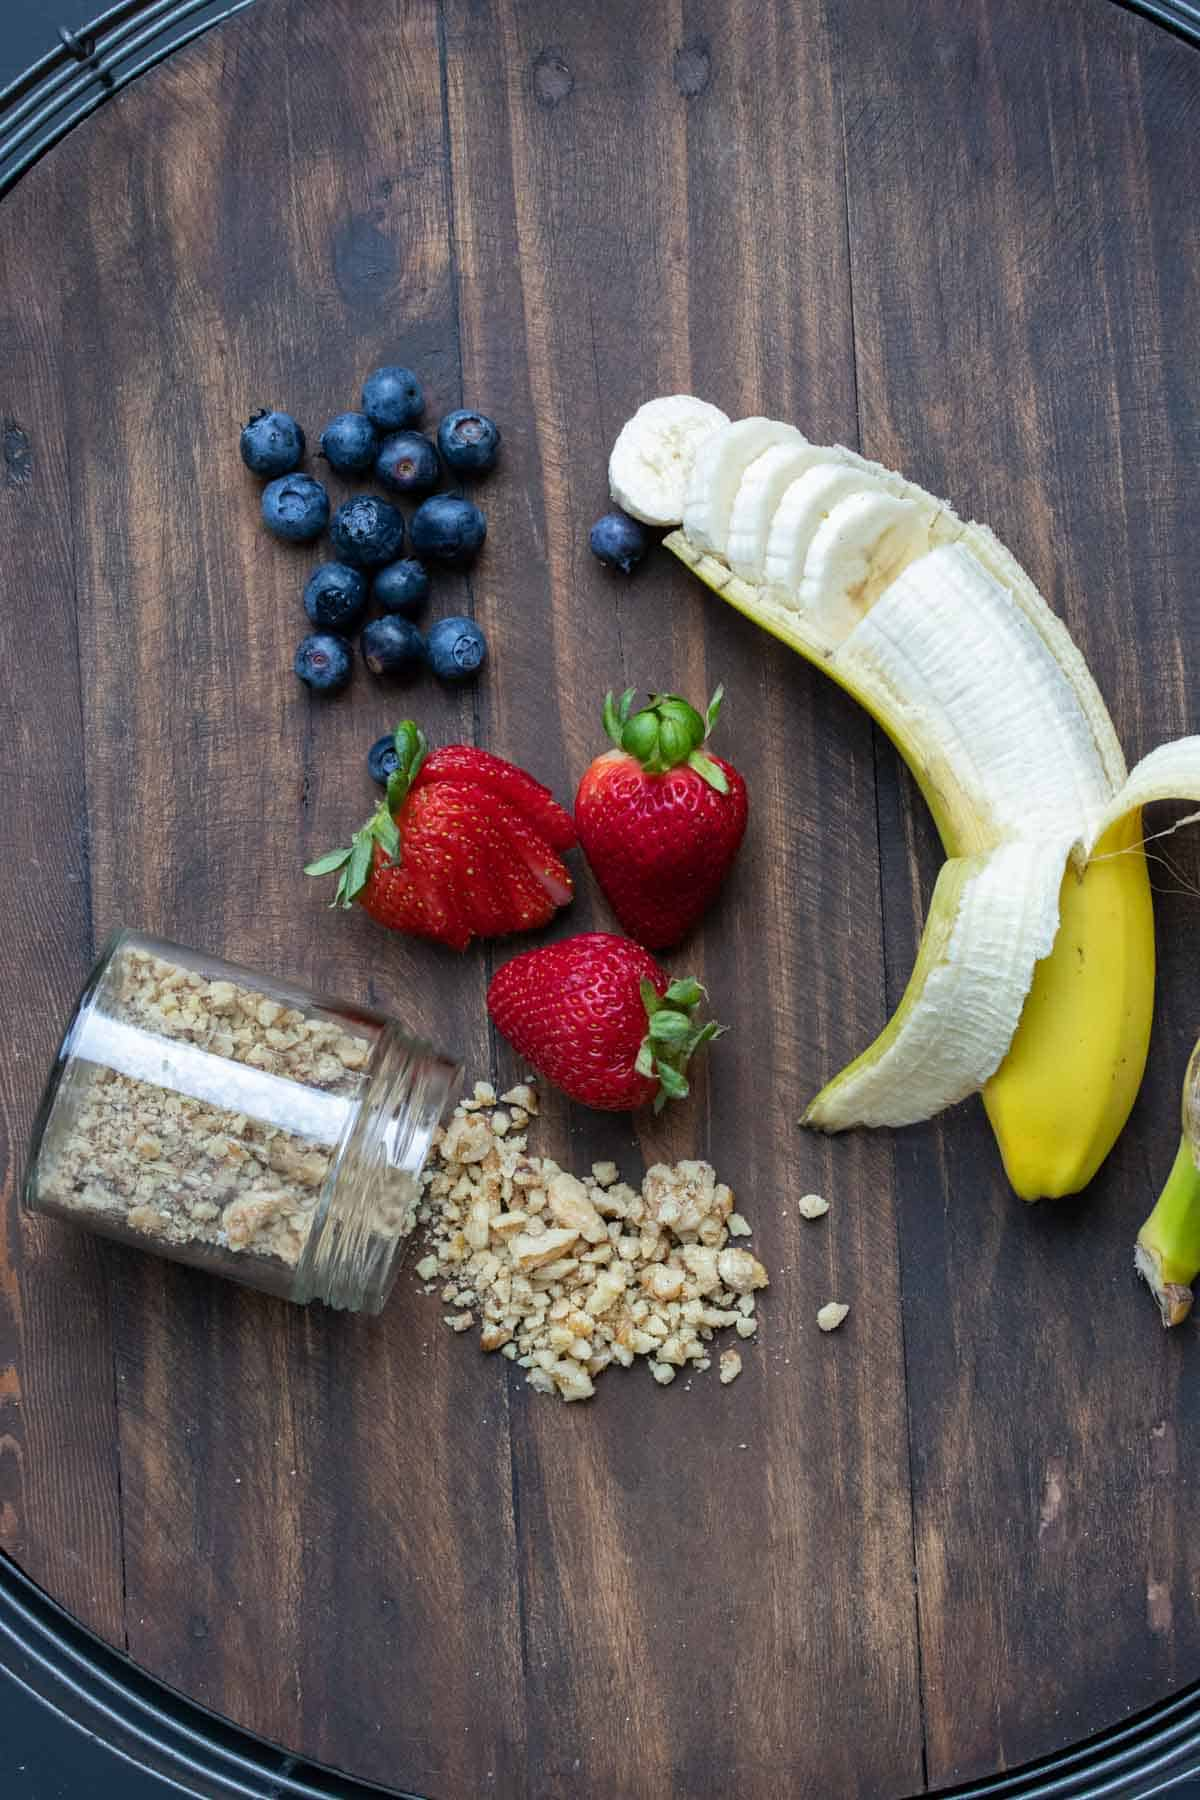 Fruit and nuts to top oatmeal with on a wooden surface